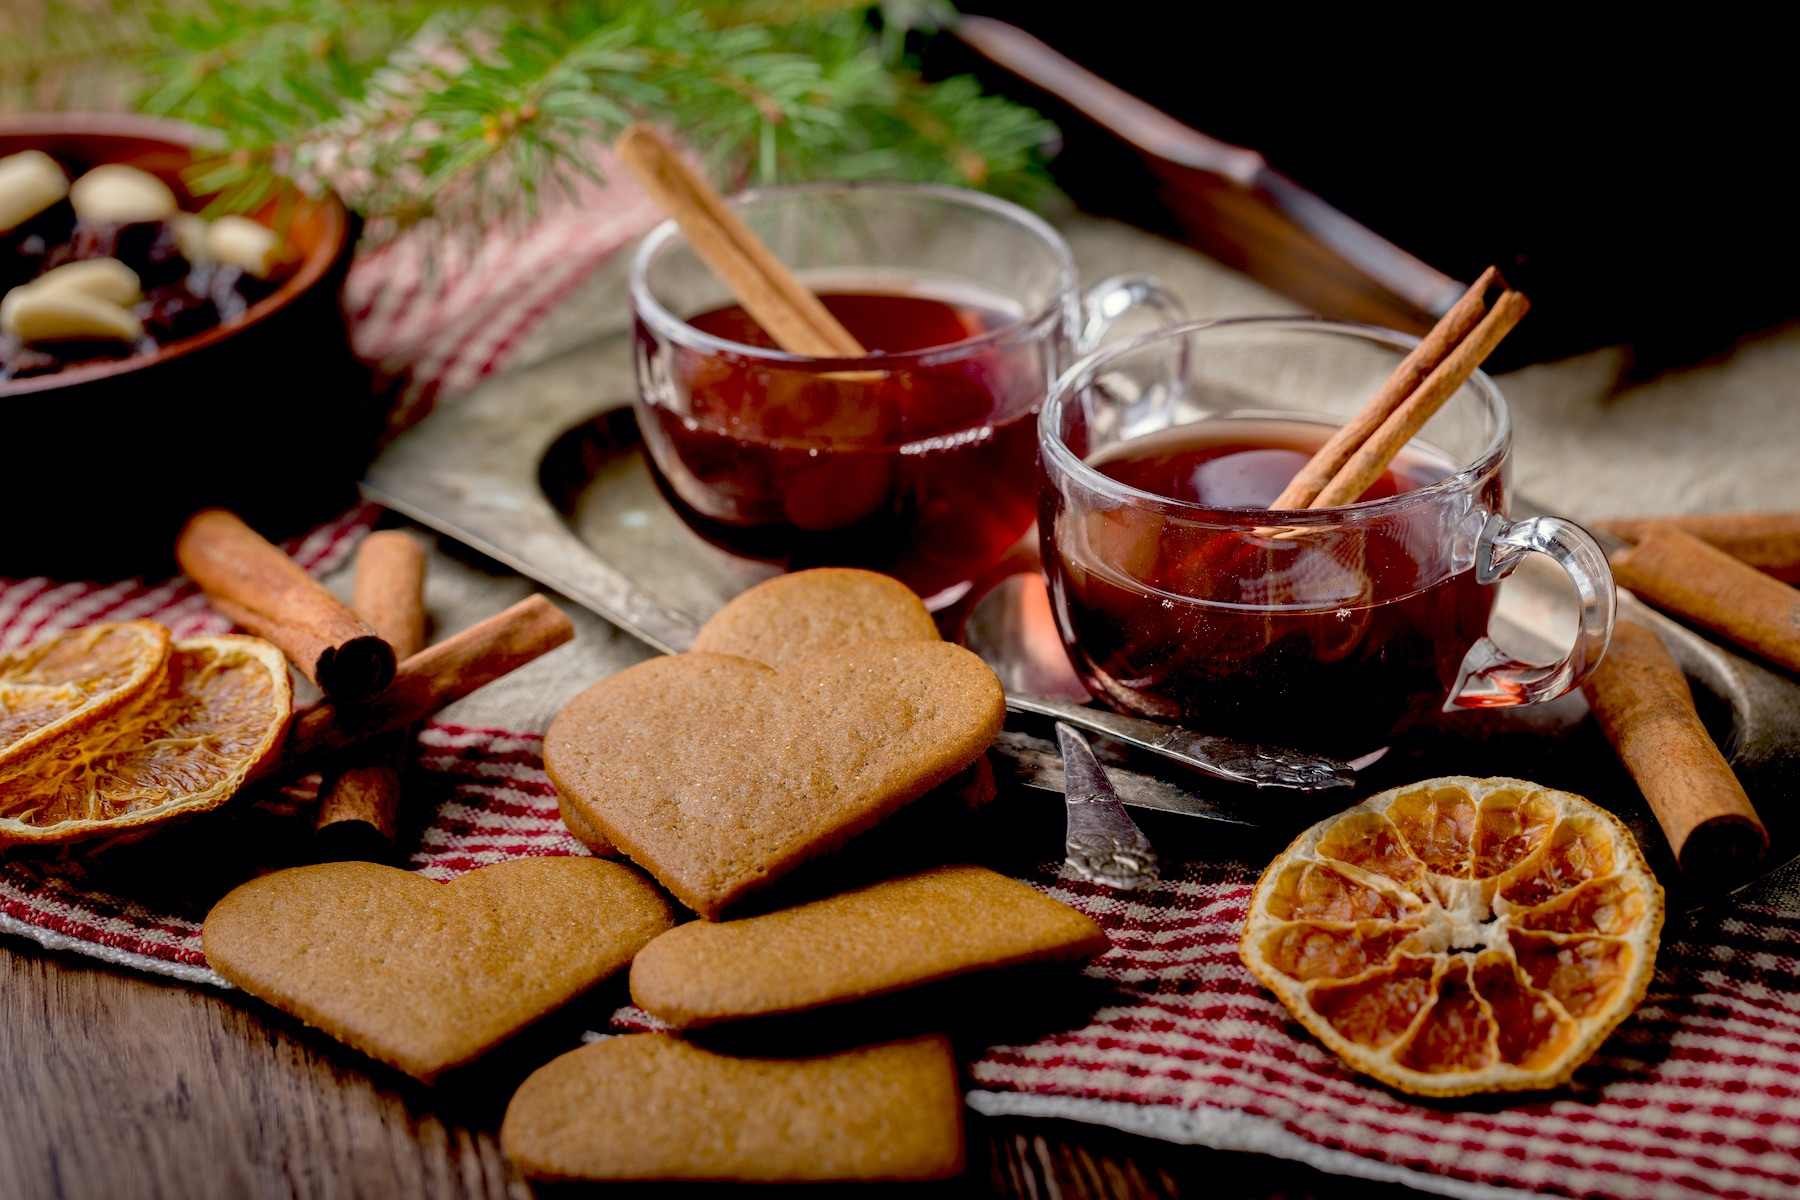 Gingerbread cookies and mulled wine on a table.